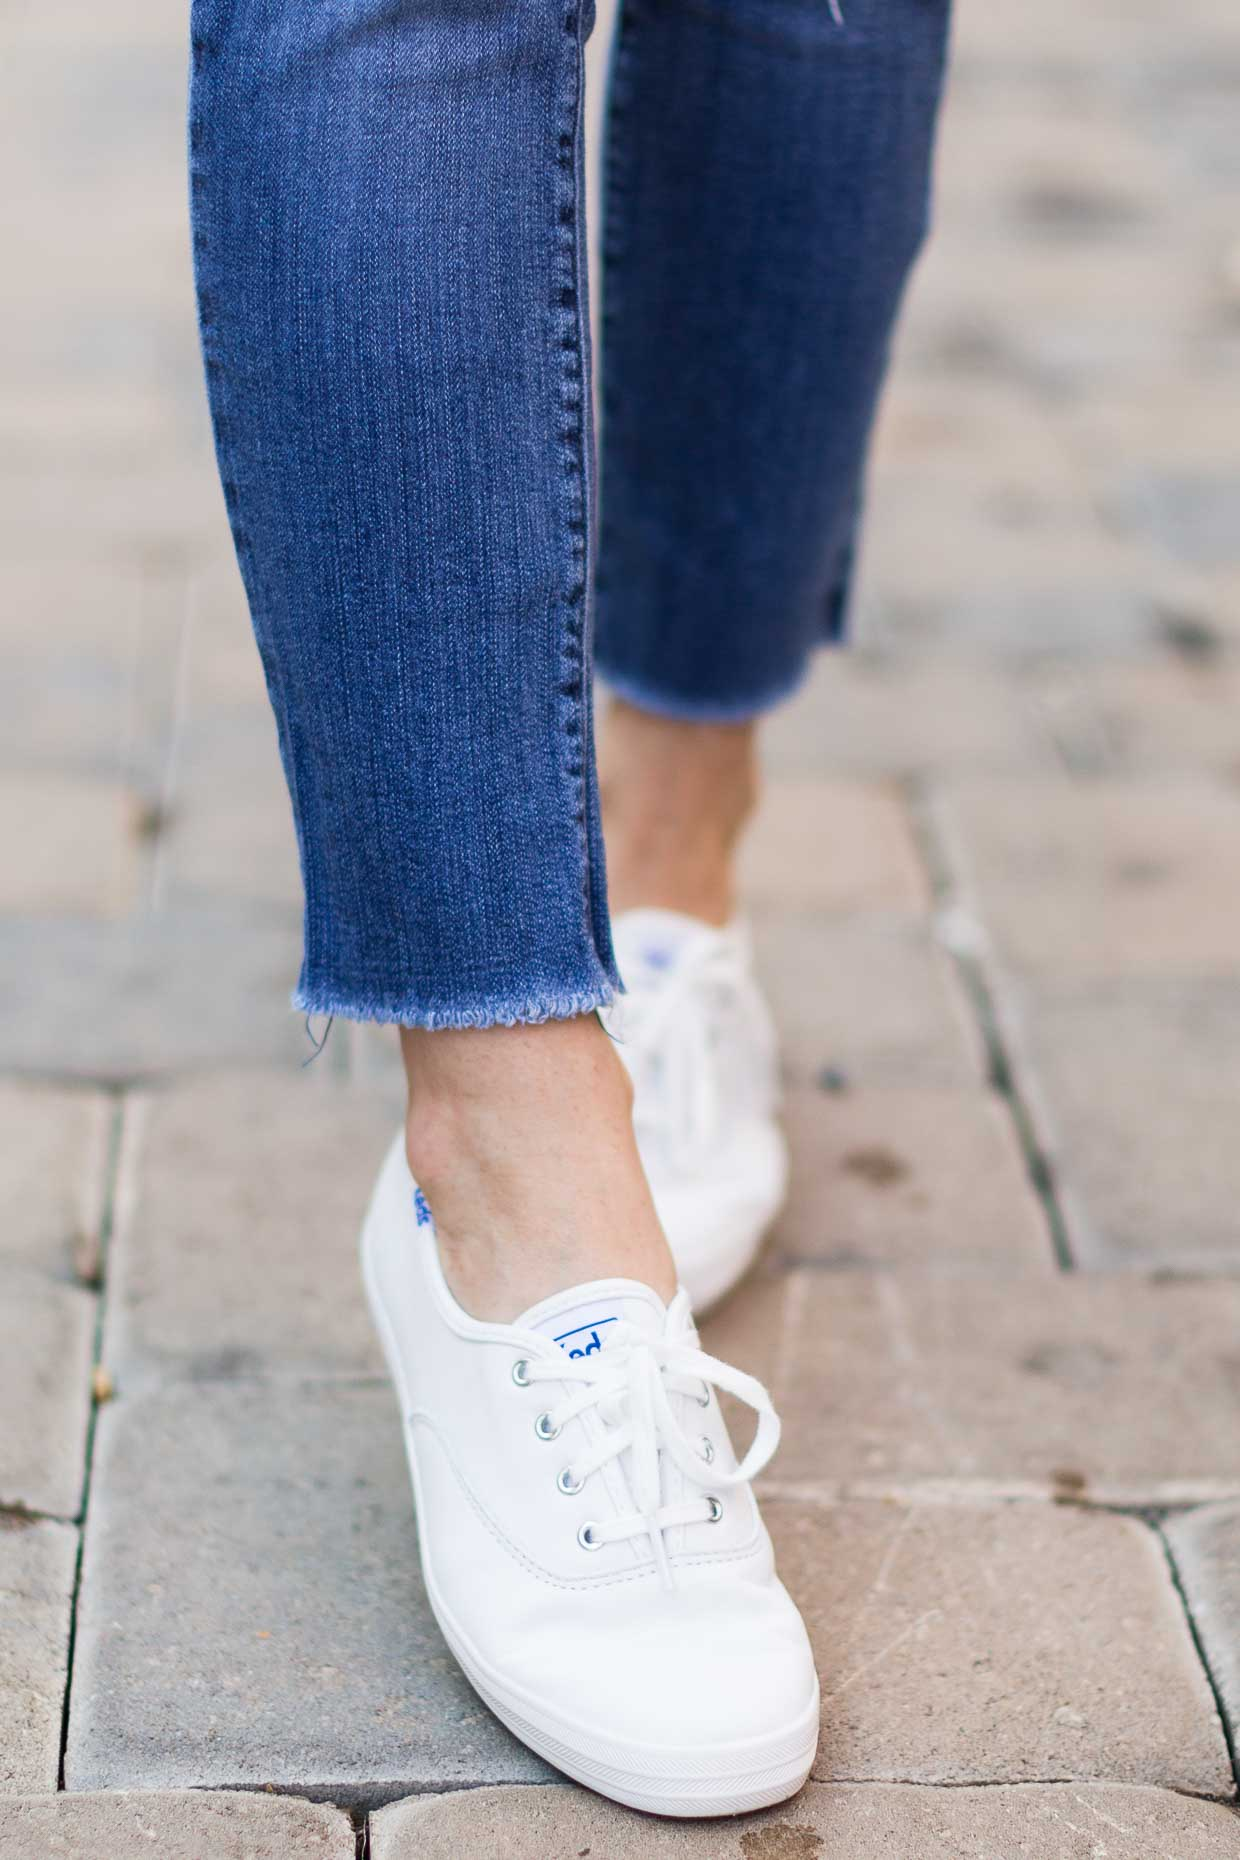 How To Style Keds - Keds Outfit Ideas